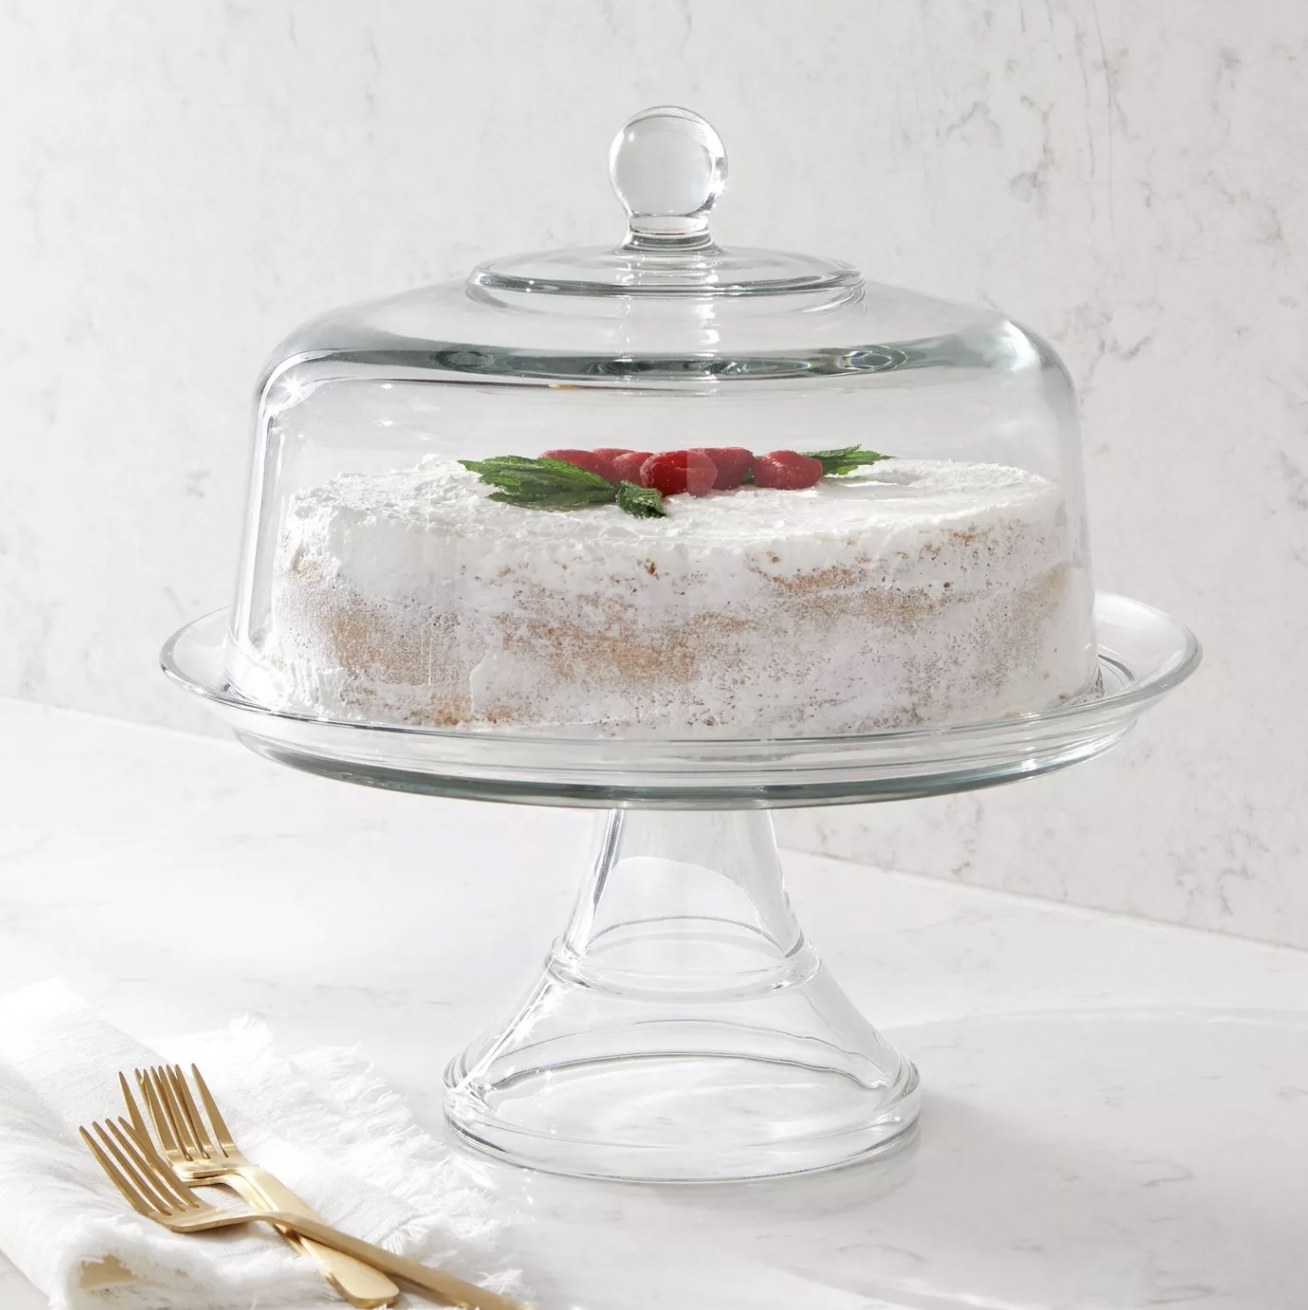 a glass cake stand with a lid holding a cake on a kitchen counter